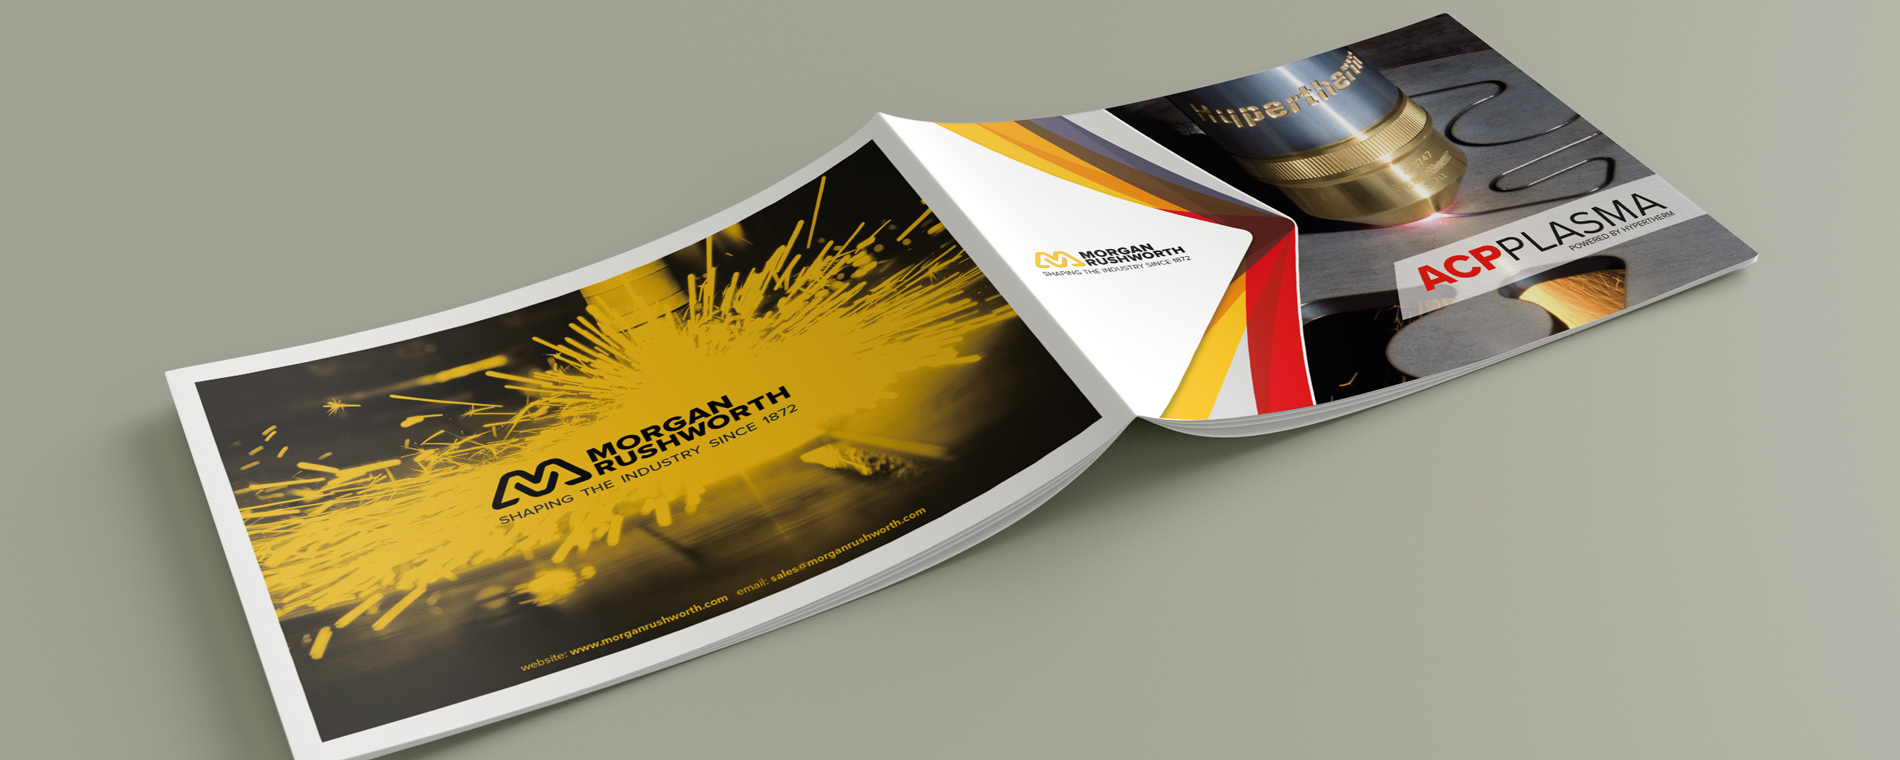 Morgan-Rushworth-brochure-landscape